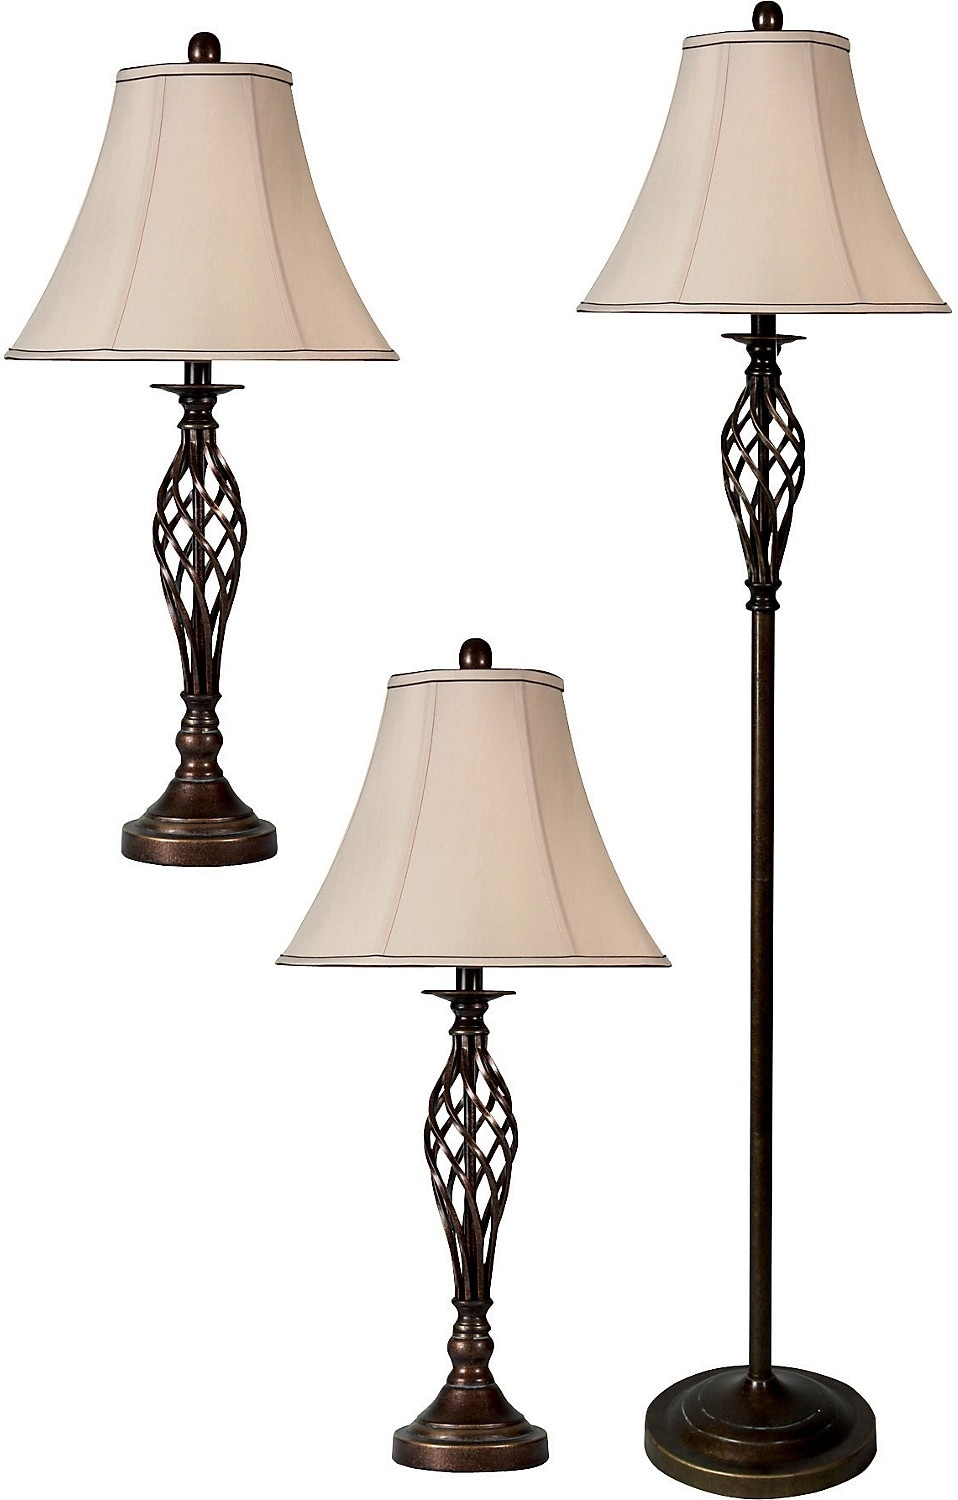 accessories dark brass cage 3 piece floor and two table lamps set. Black Bedroom Furniture Sets. Home Design Ideas